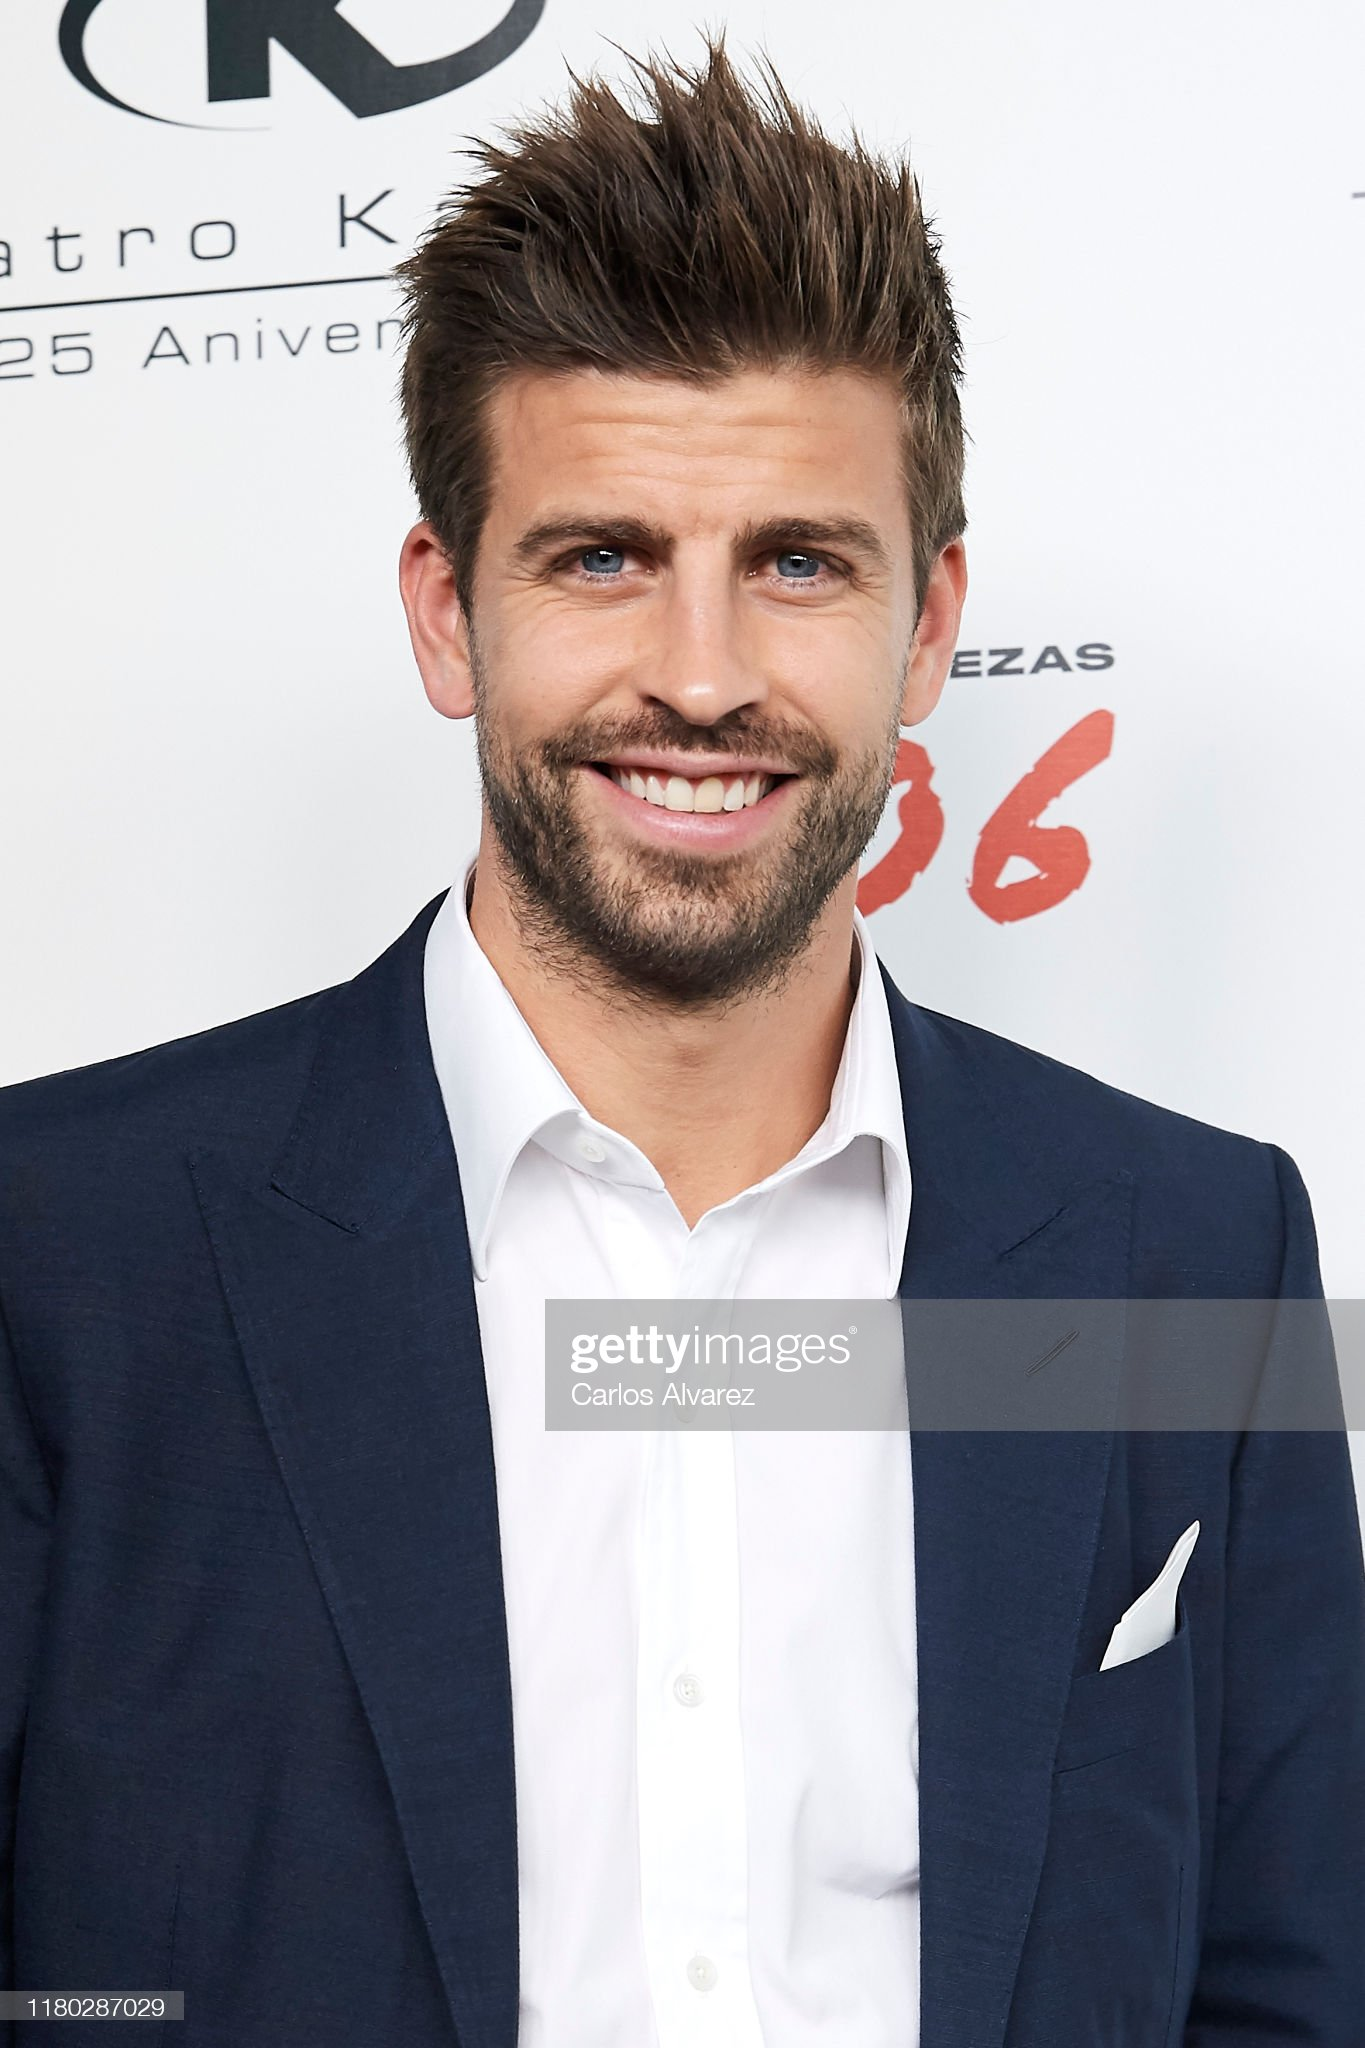 ¿Cuánto mide Gerard Piqué? - Altura - Real height Gerard-pique-attends-hombres-esquire-2019-awards-at-the-kapital-club-picture-id1180287029?s=2048x2048